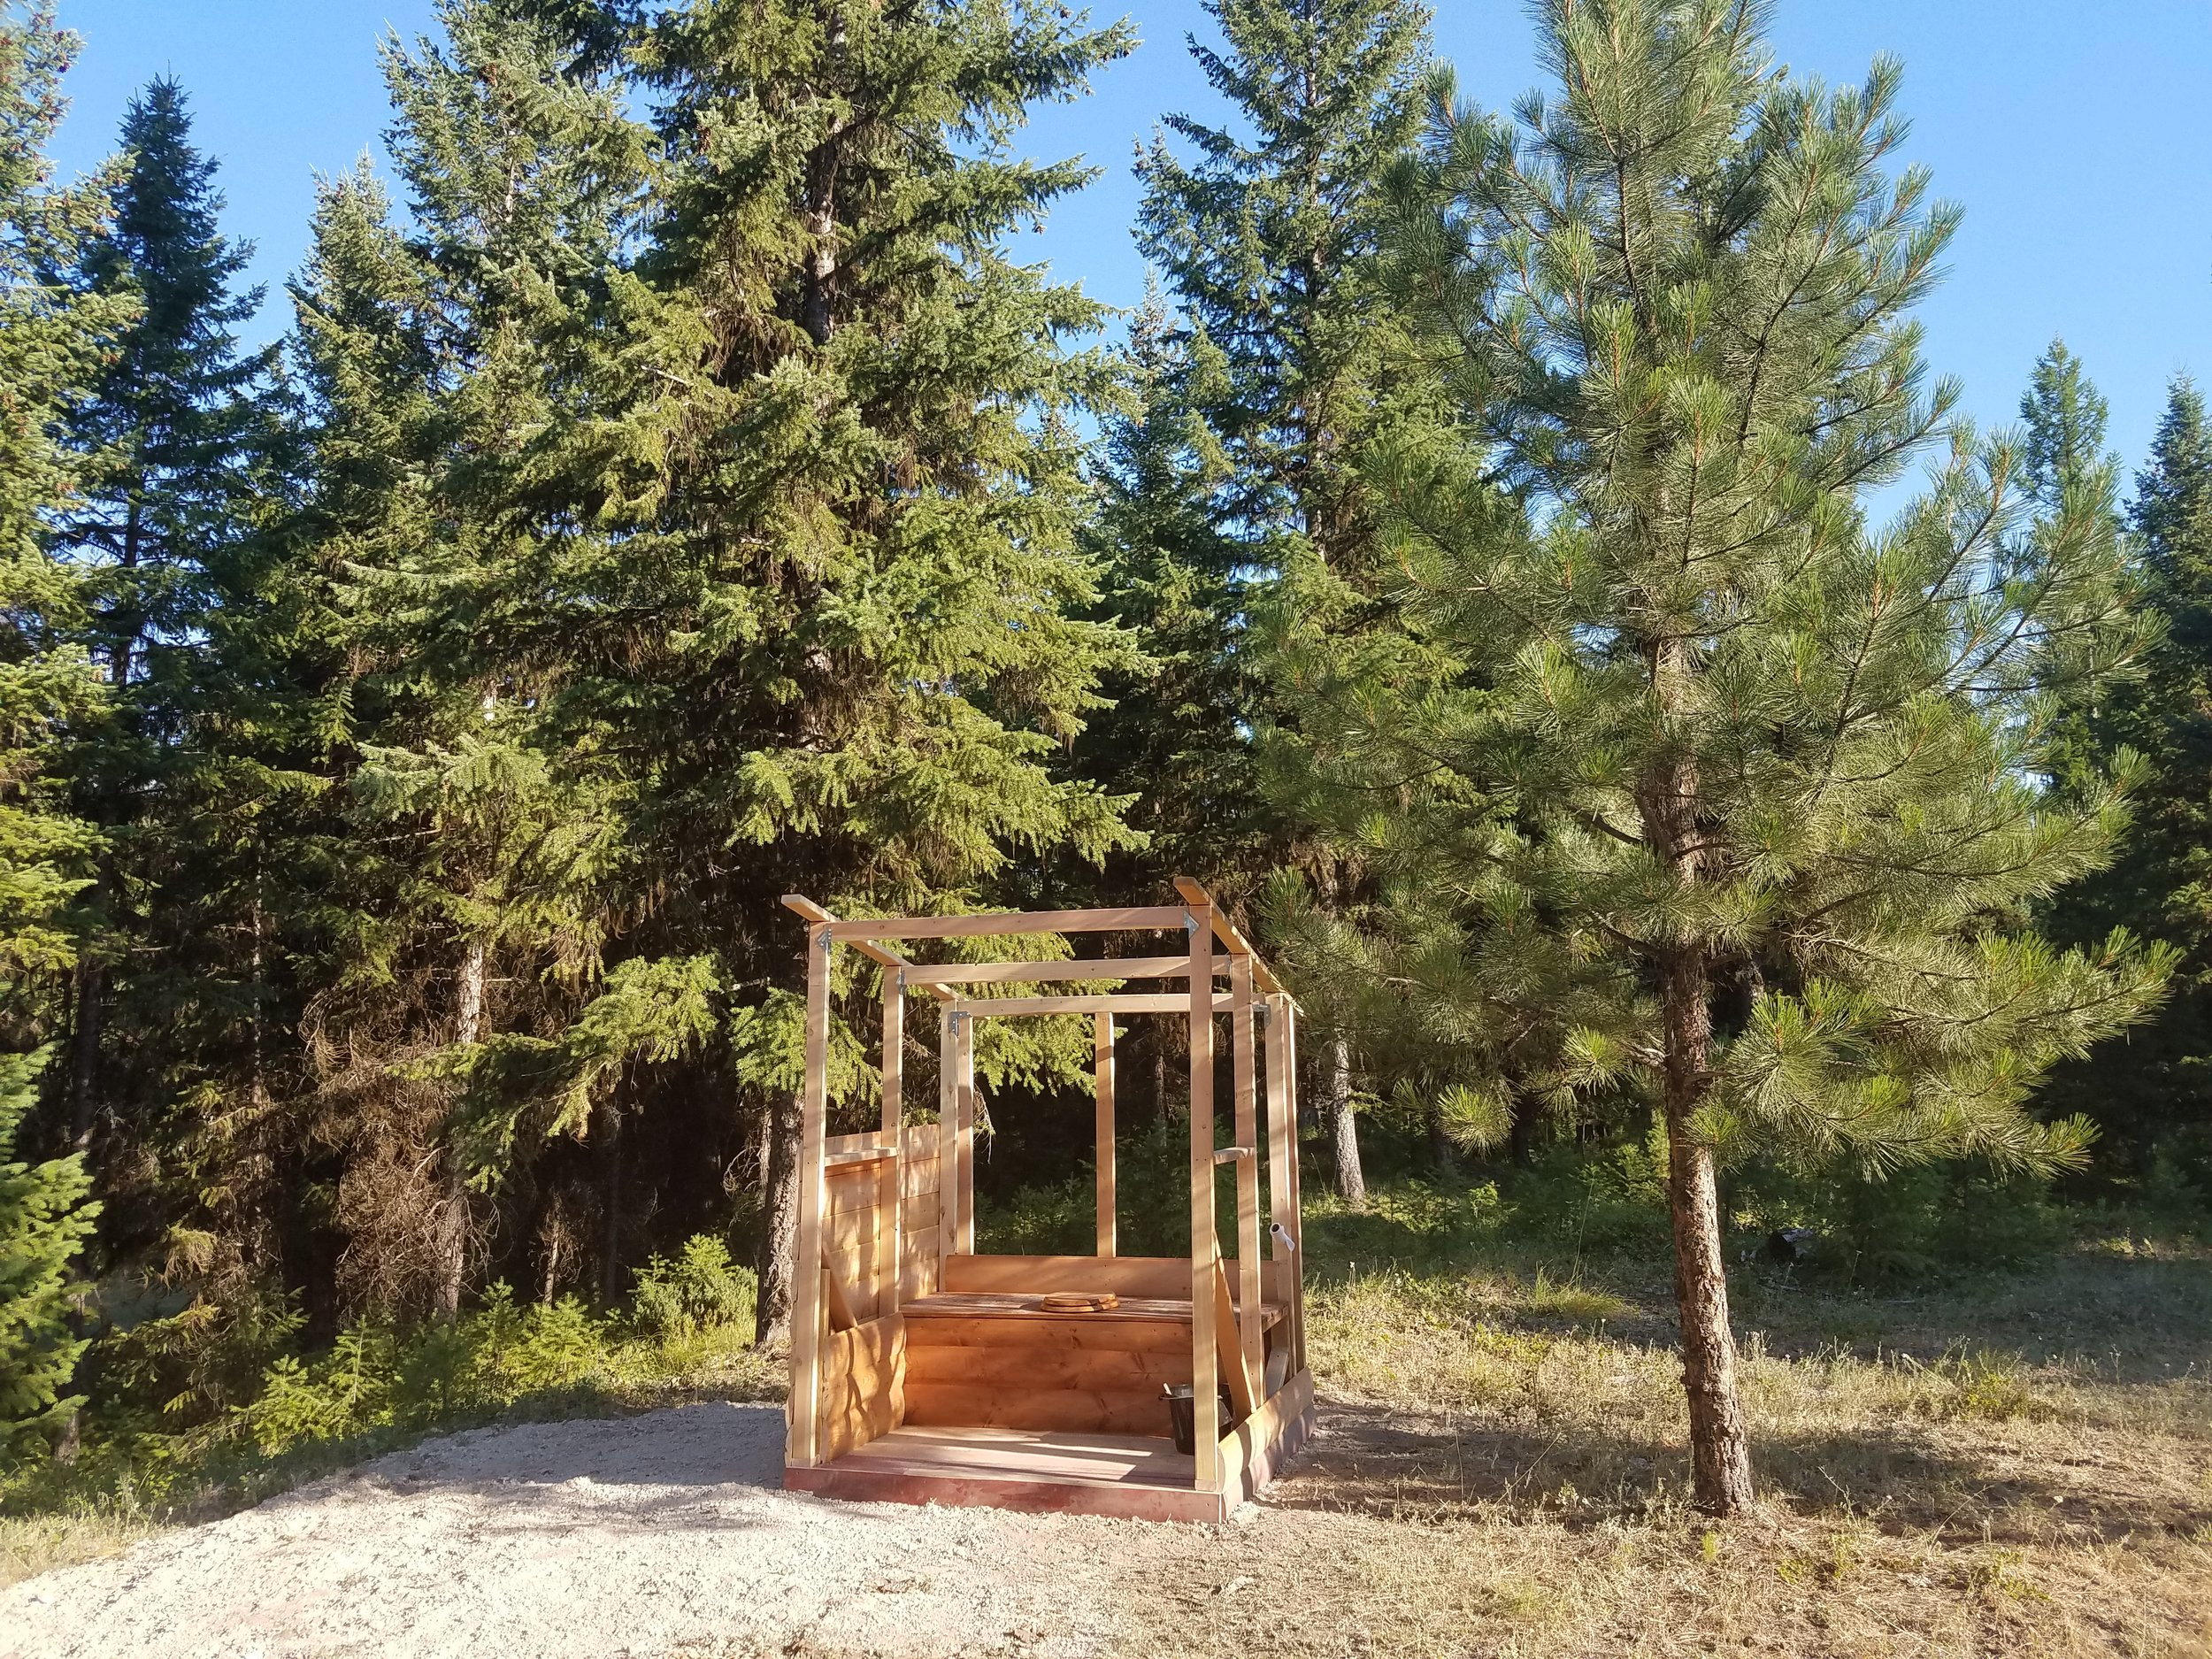 2017-07-27 - Outhouse Progress at SR2 #2.jpg